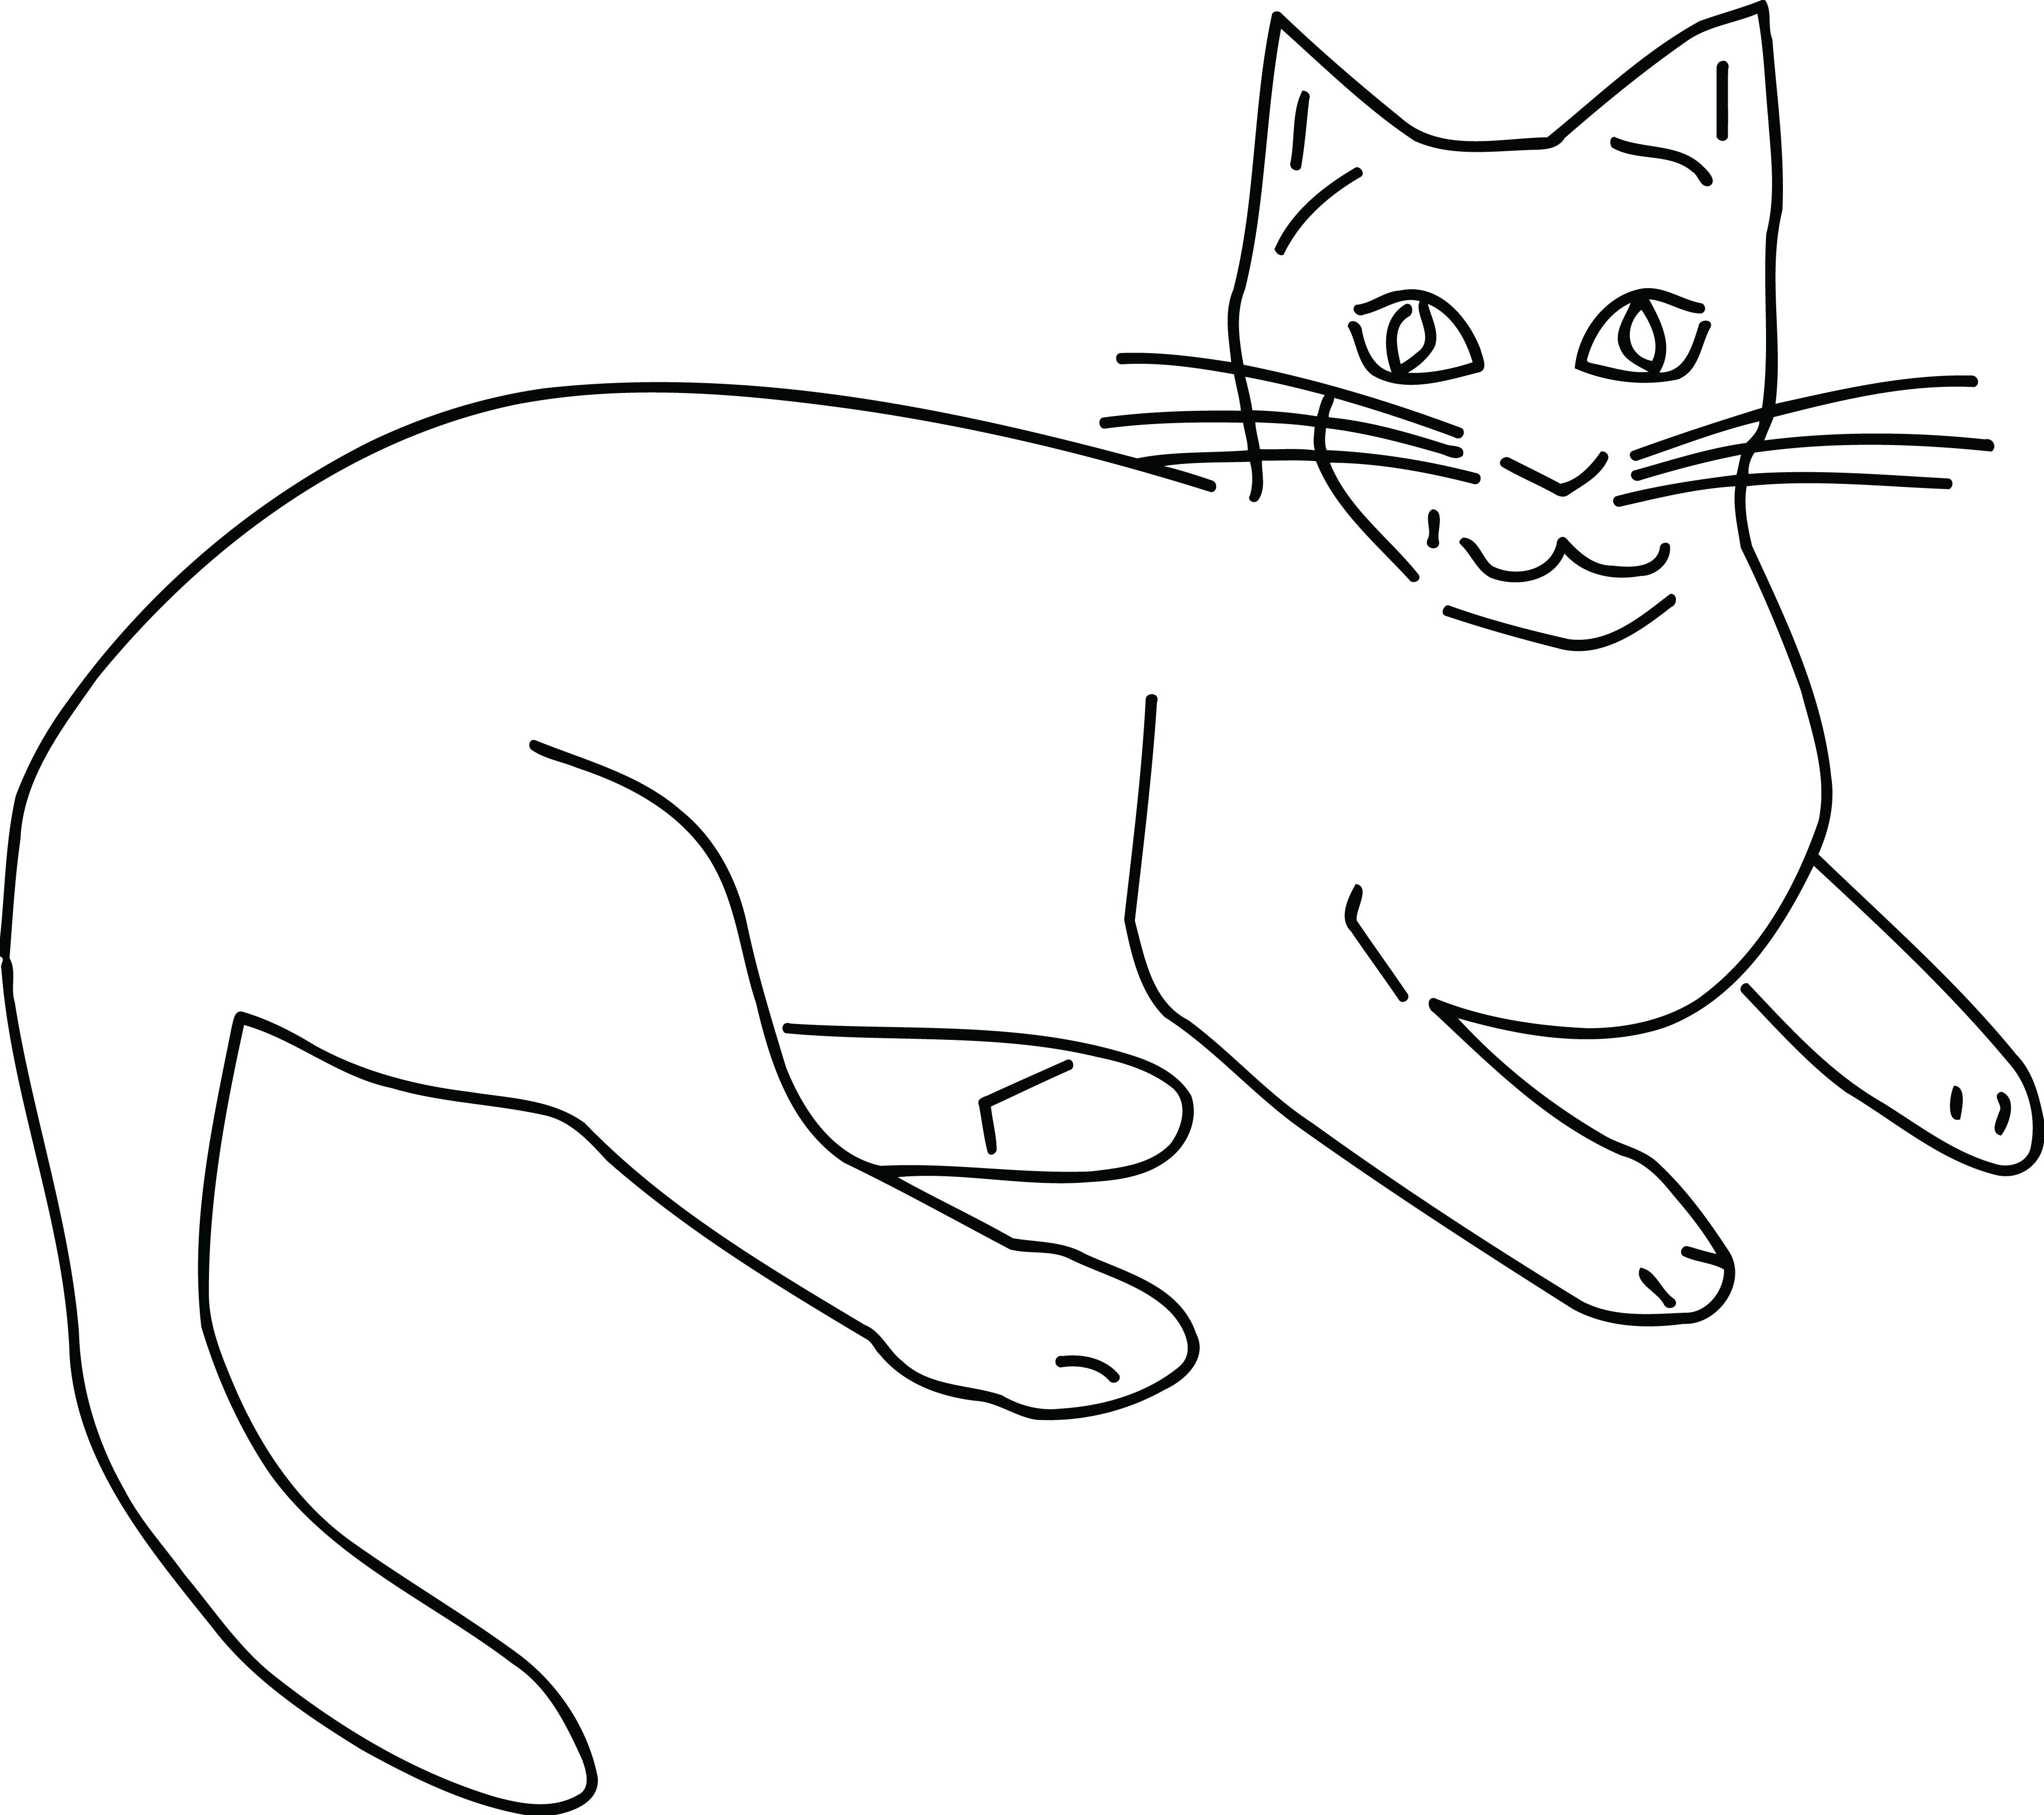 Kitty Clipart Black and White.